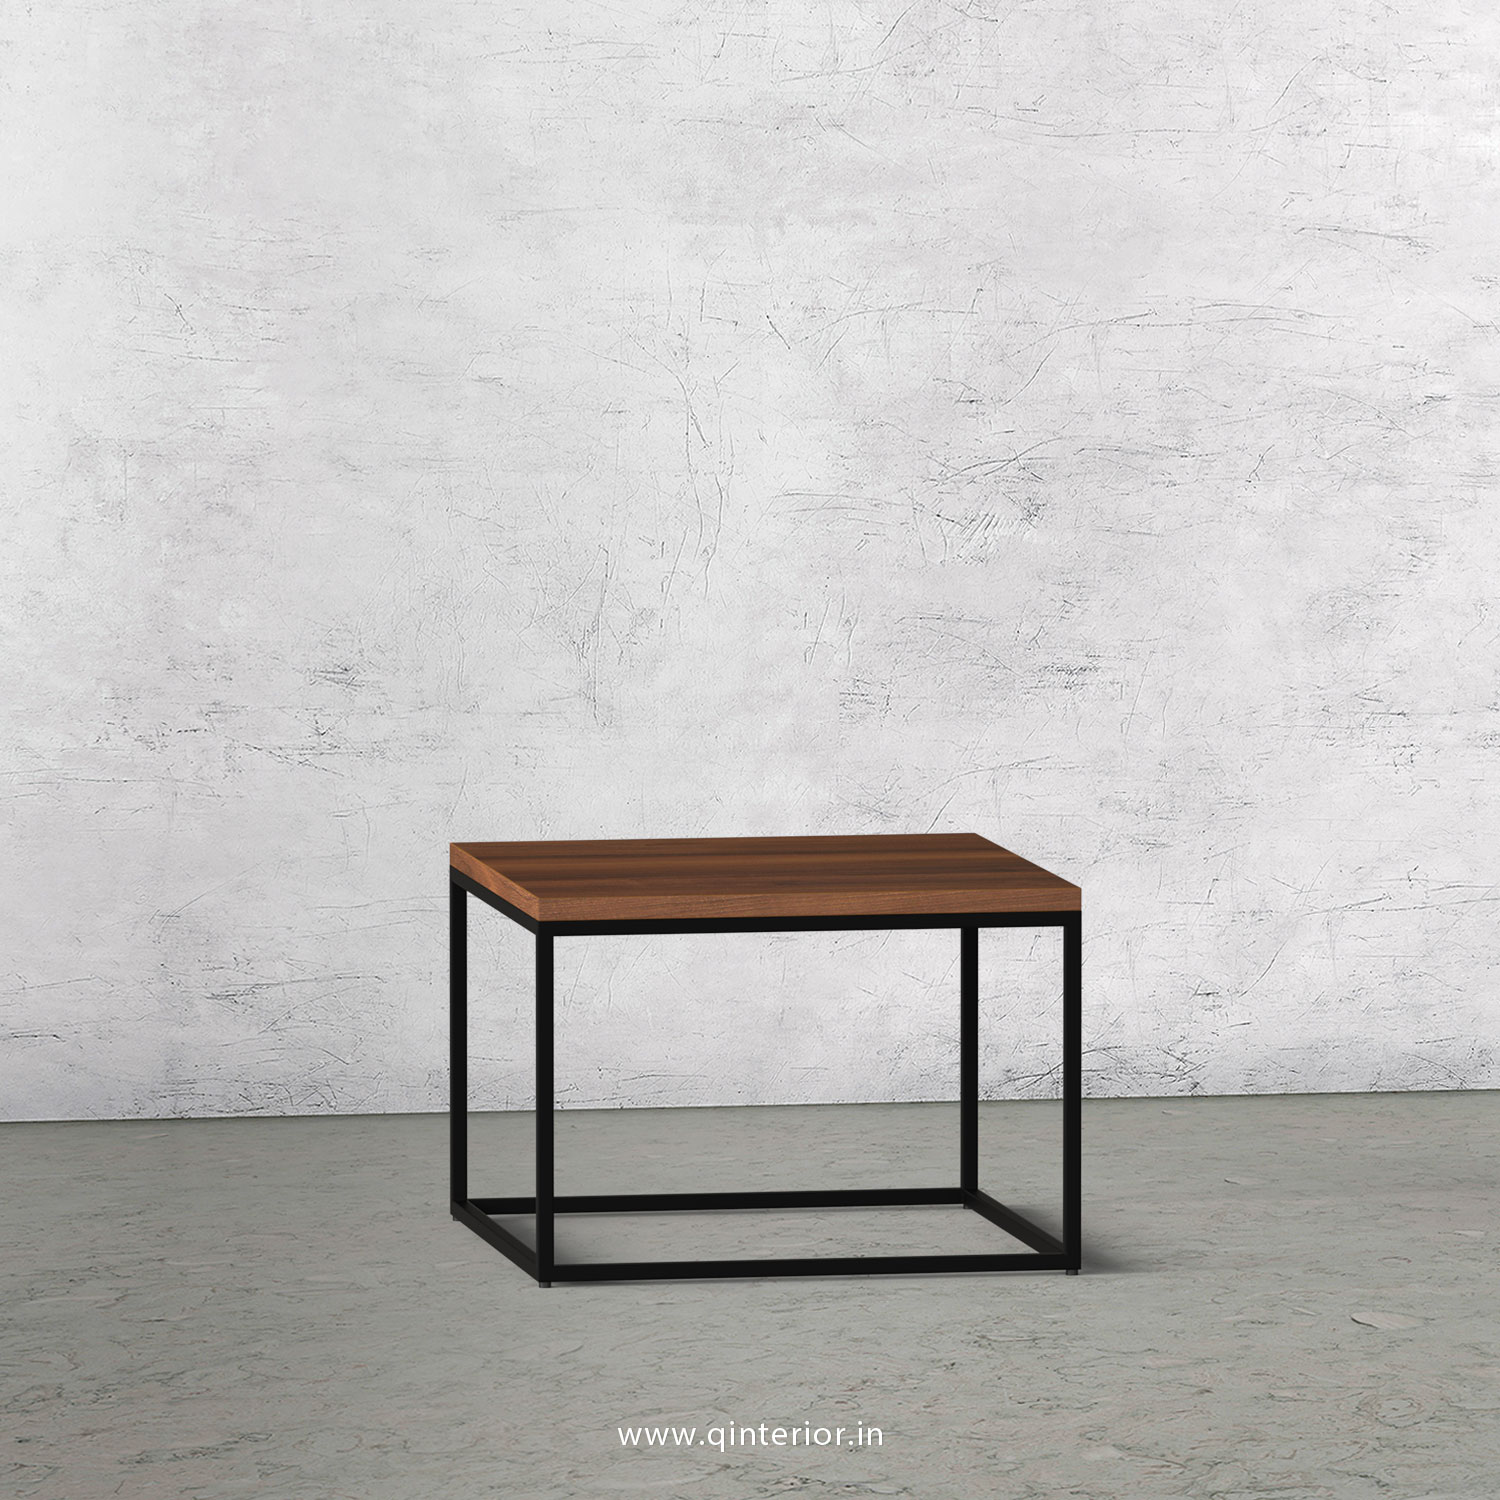 Royal Center Table with Teak Finish - RCT002 C3